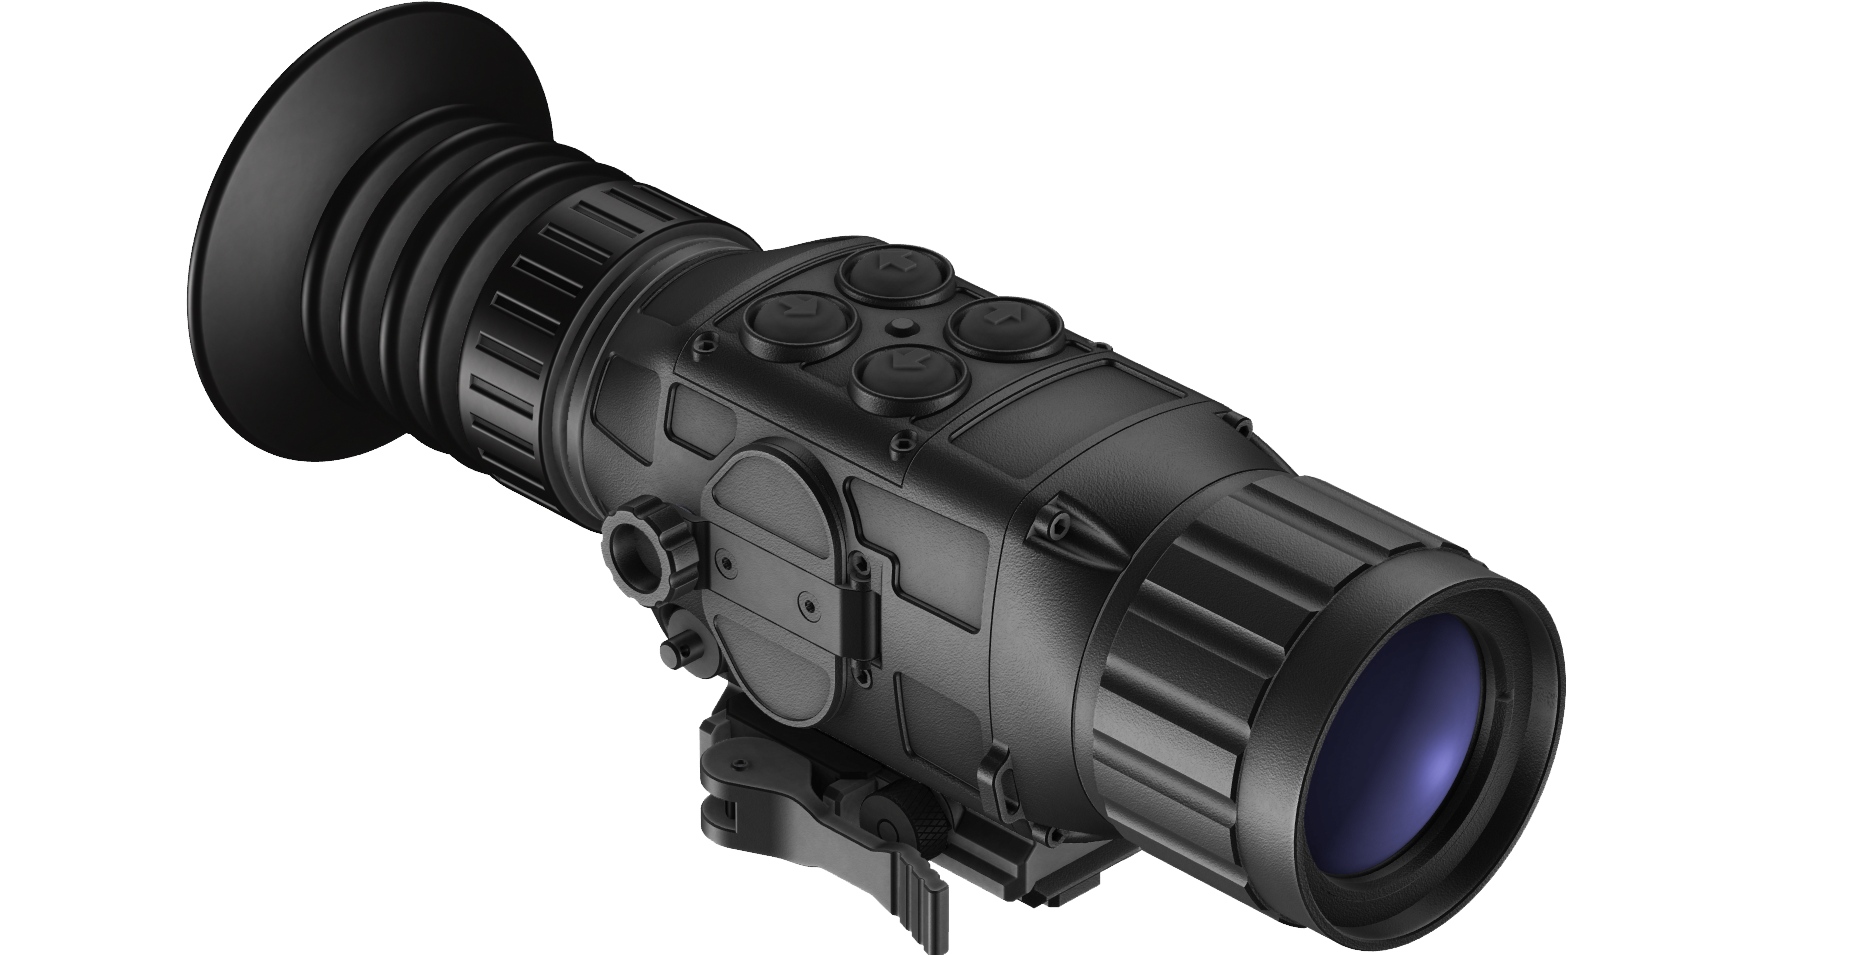 TI-GEAR-S Thermal Weapon Sights